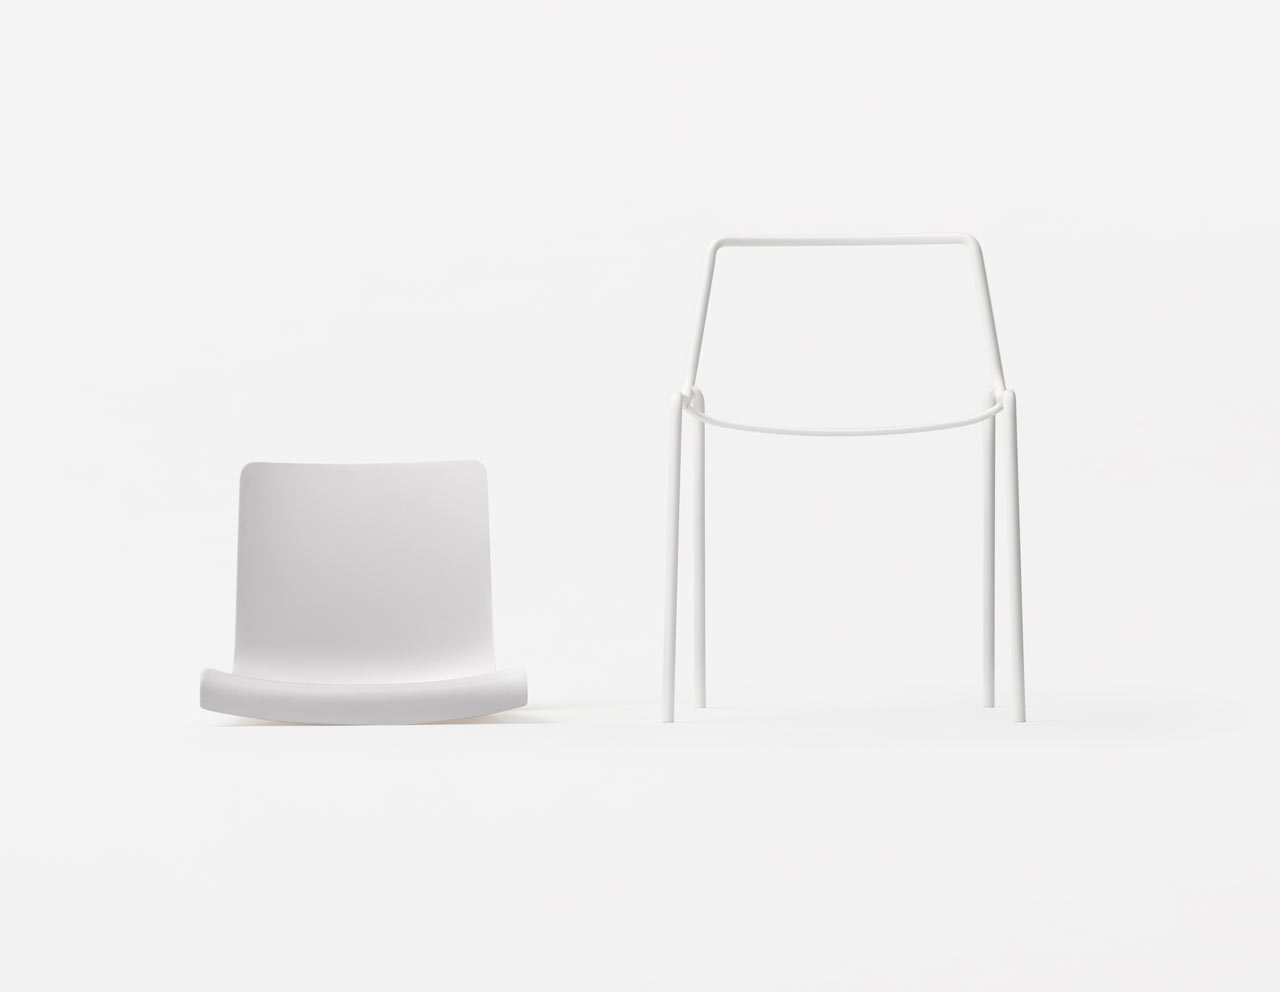 Offset Chair by Nendo for Kokuyo